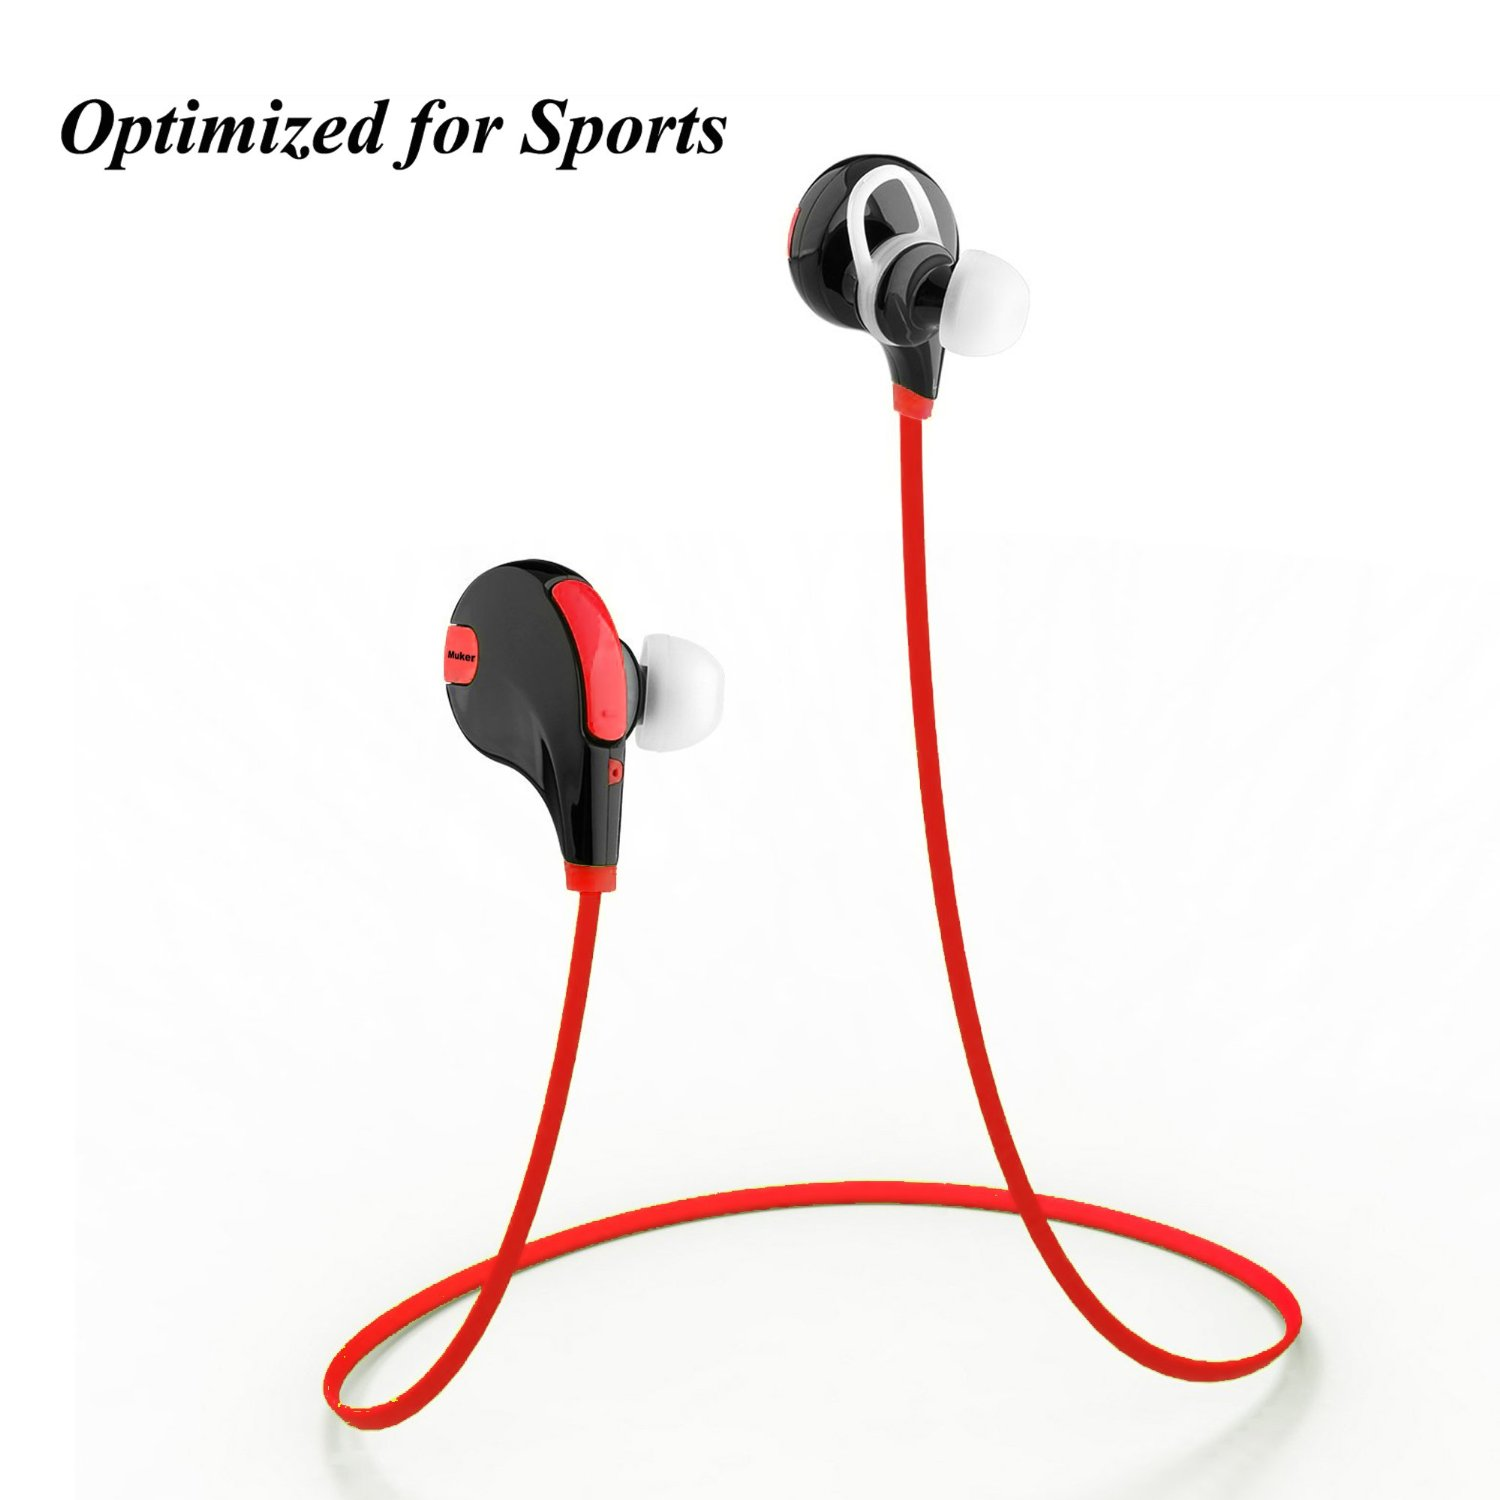 muker feather bluetooth kopfh rer 4 1 wireless sport stereo headset test. Black Bedroom Furniture Sets. Home Design Ideas